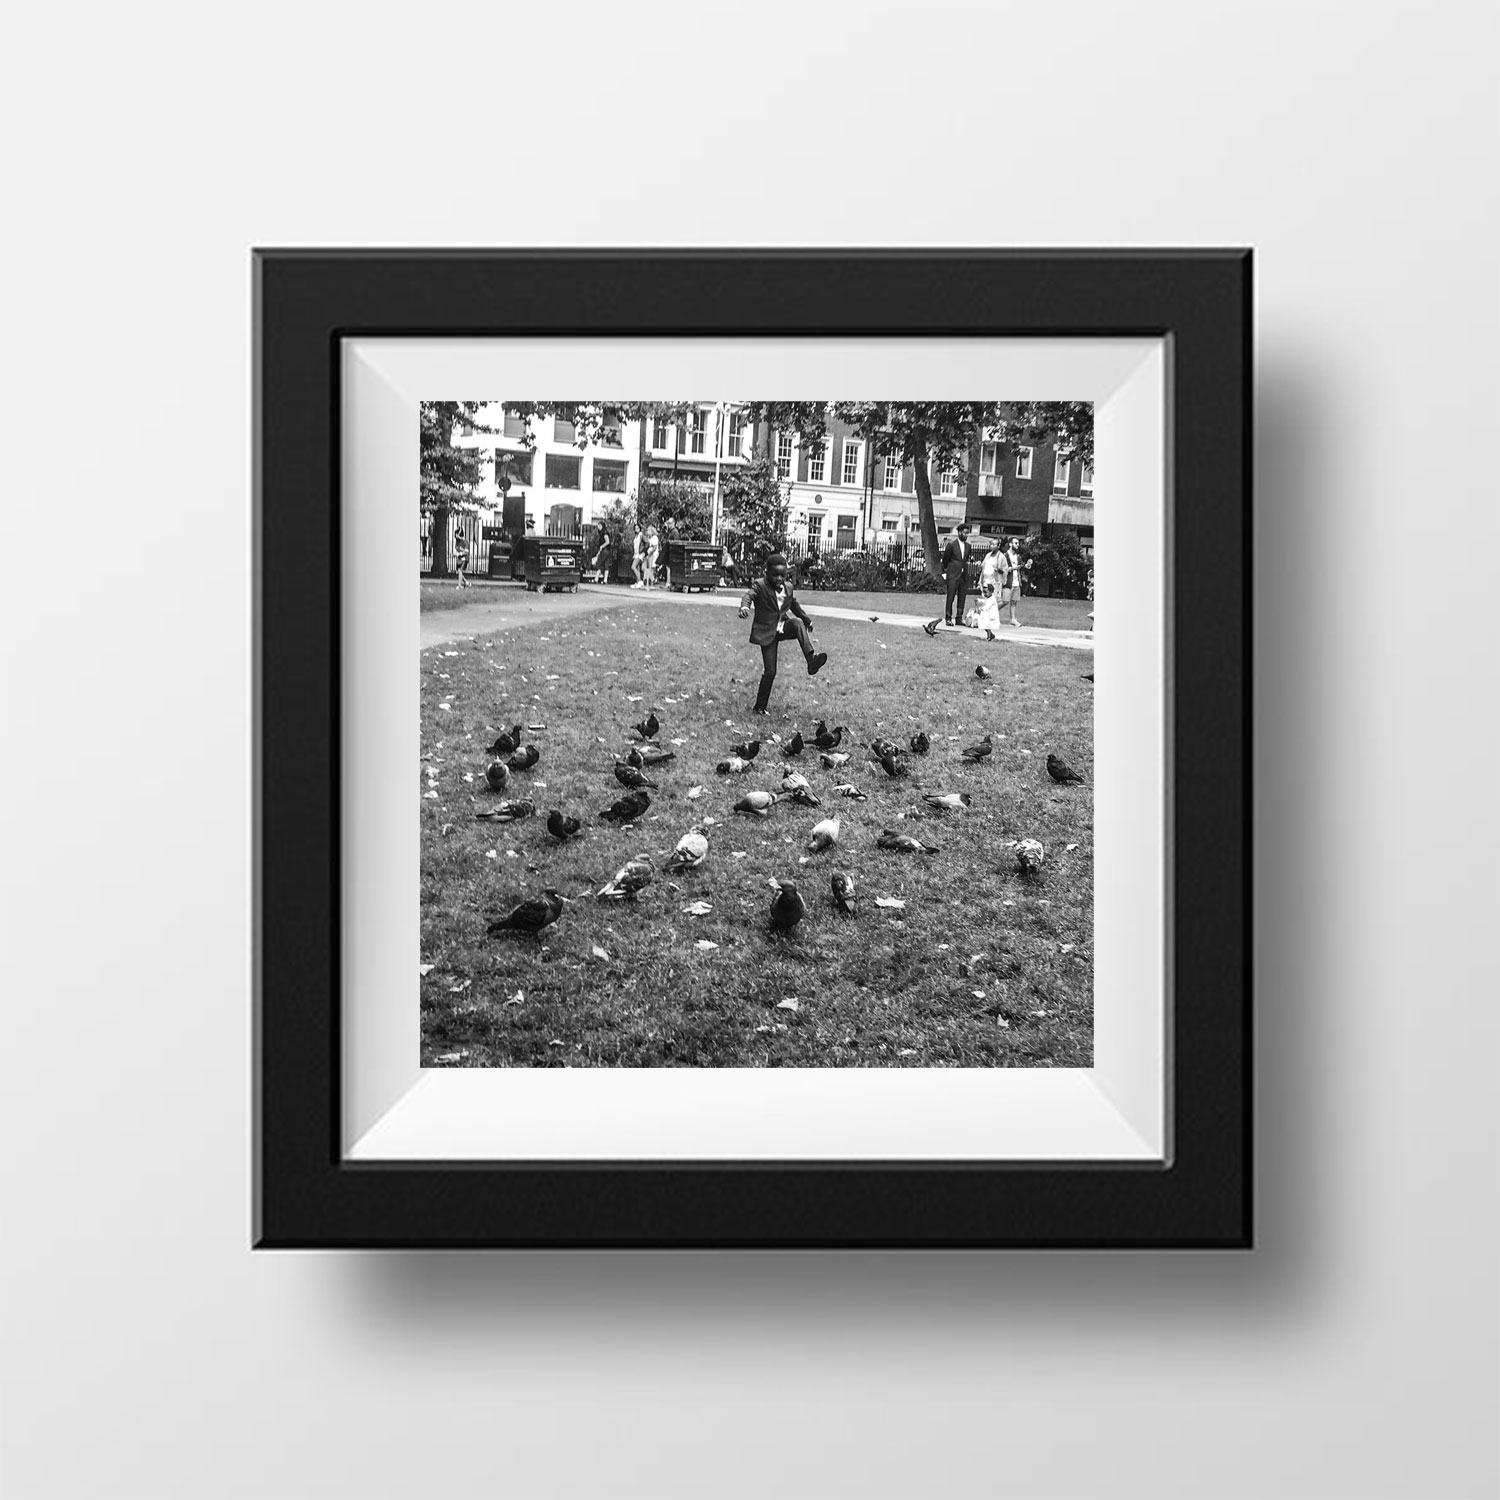 'Romper Stomper' Soho Square, London © Jason Florio. Young black boy, in a suit, stamps the ground at pigeons on the park